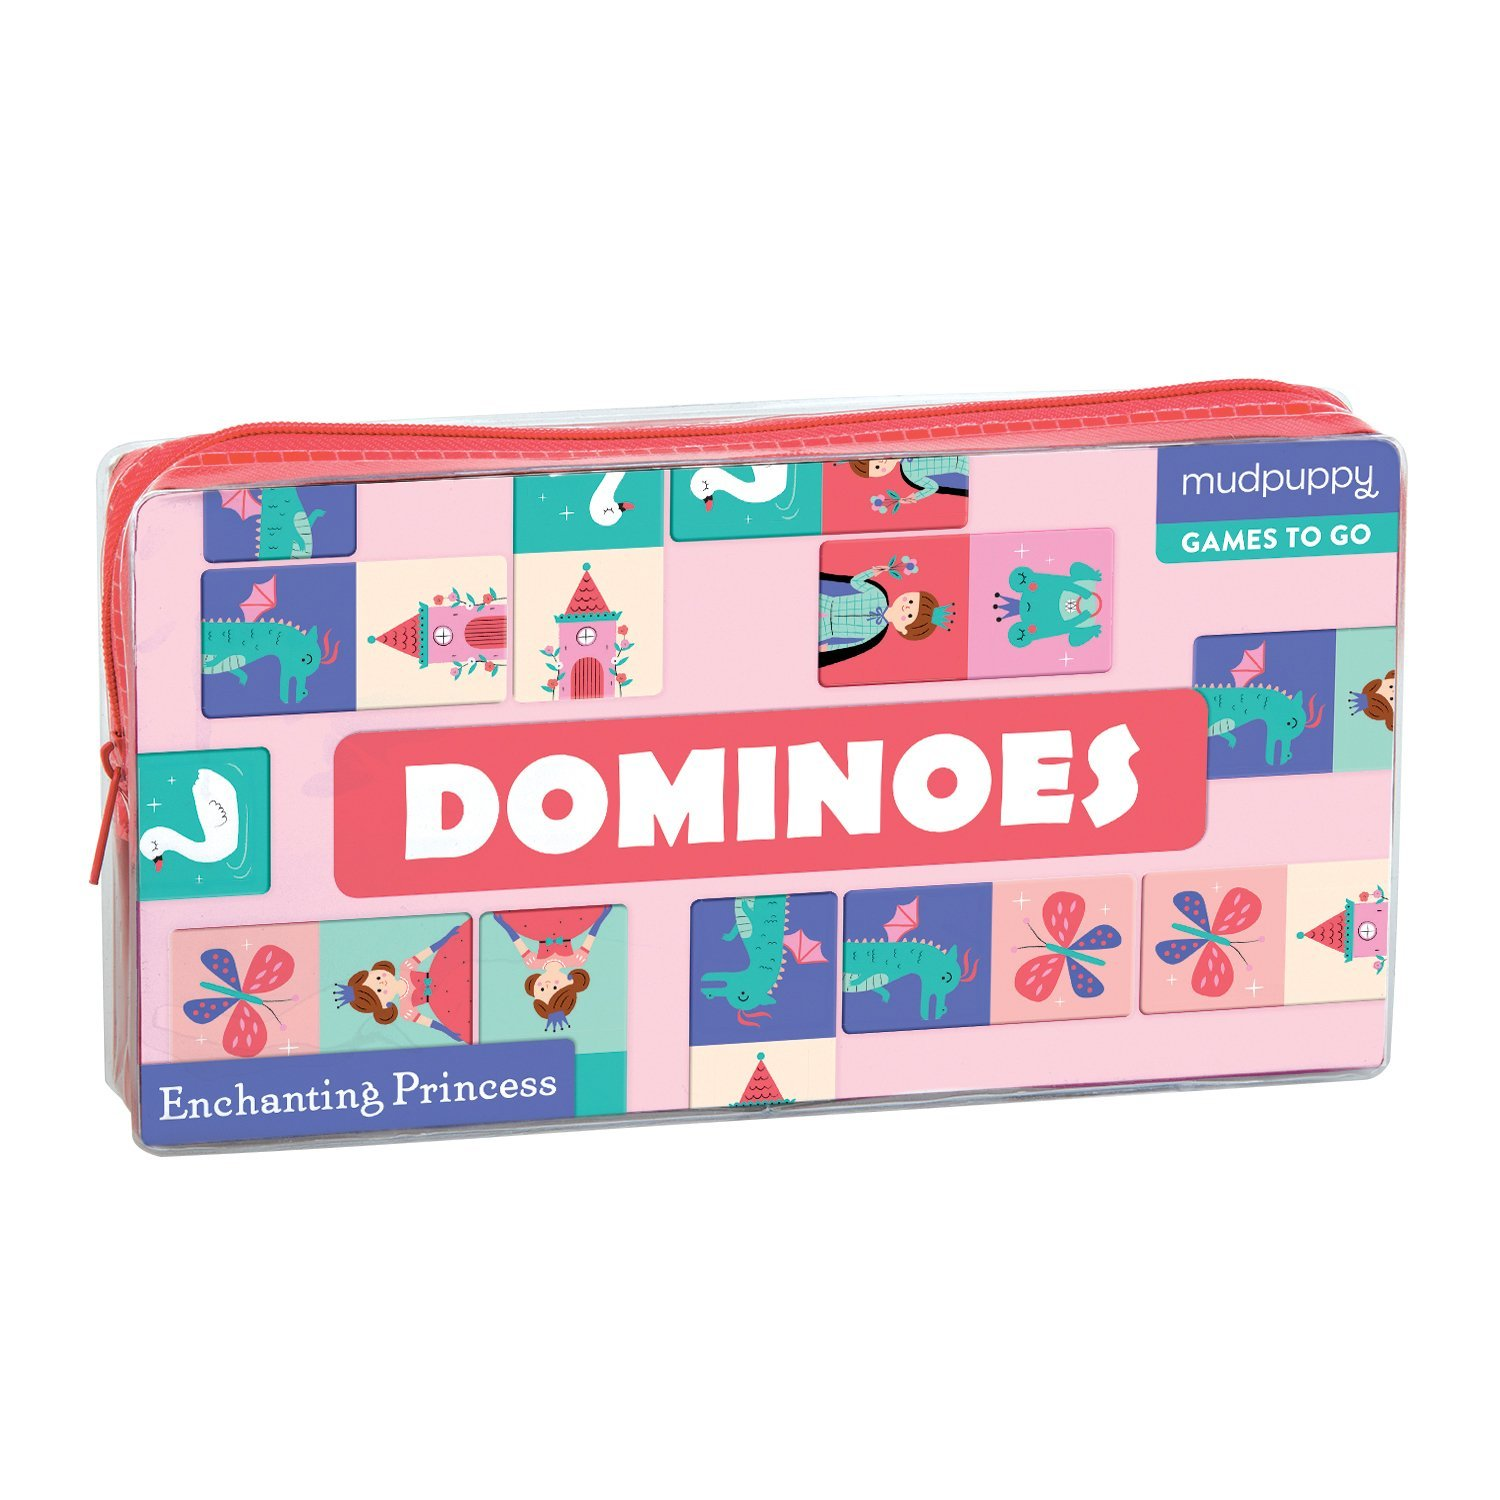 Joc - Games to go - Dominoes Enchanting Princess | Mudpuppy